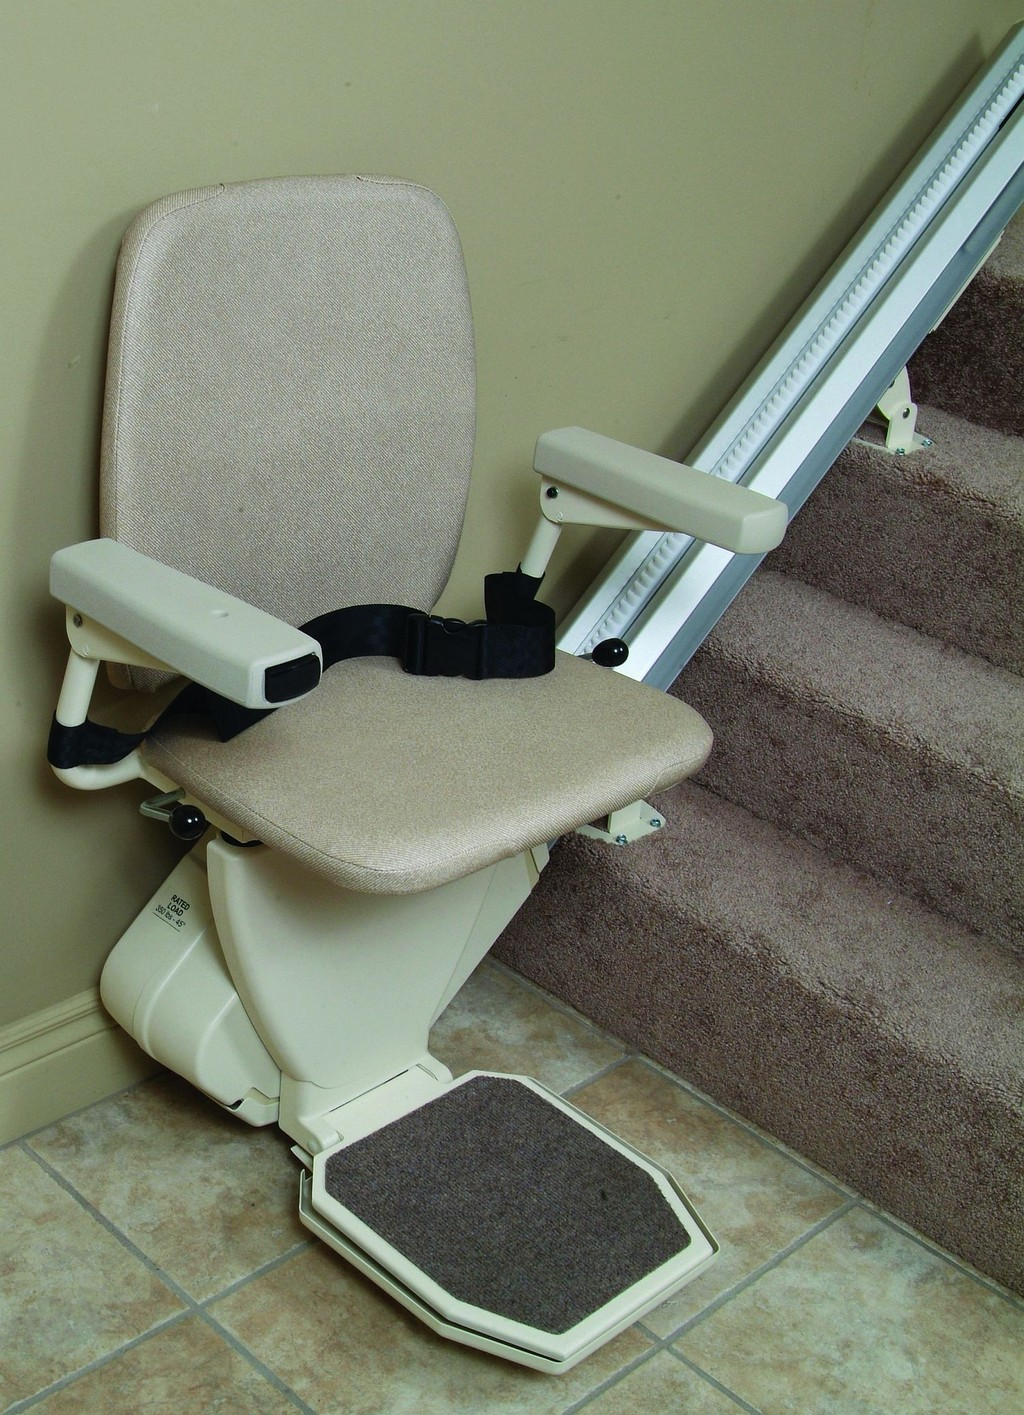 stair lifts elderly, stair lifts basement, stairlift medical supplies, electrical stair lift chair